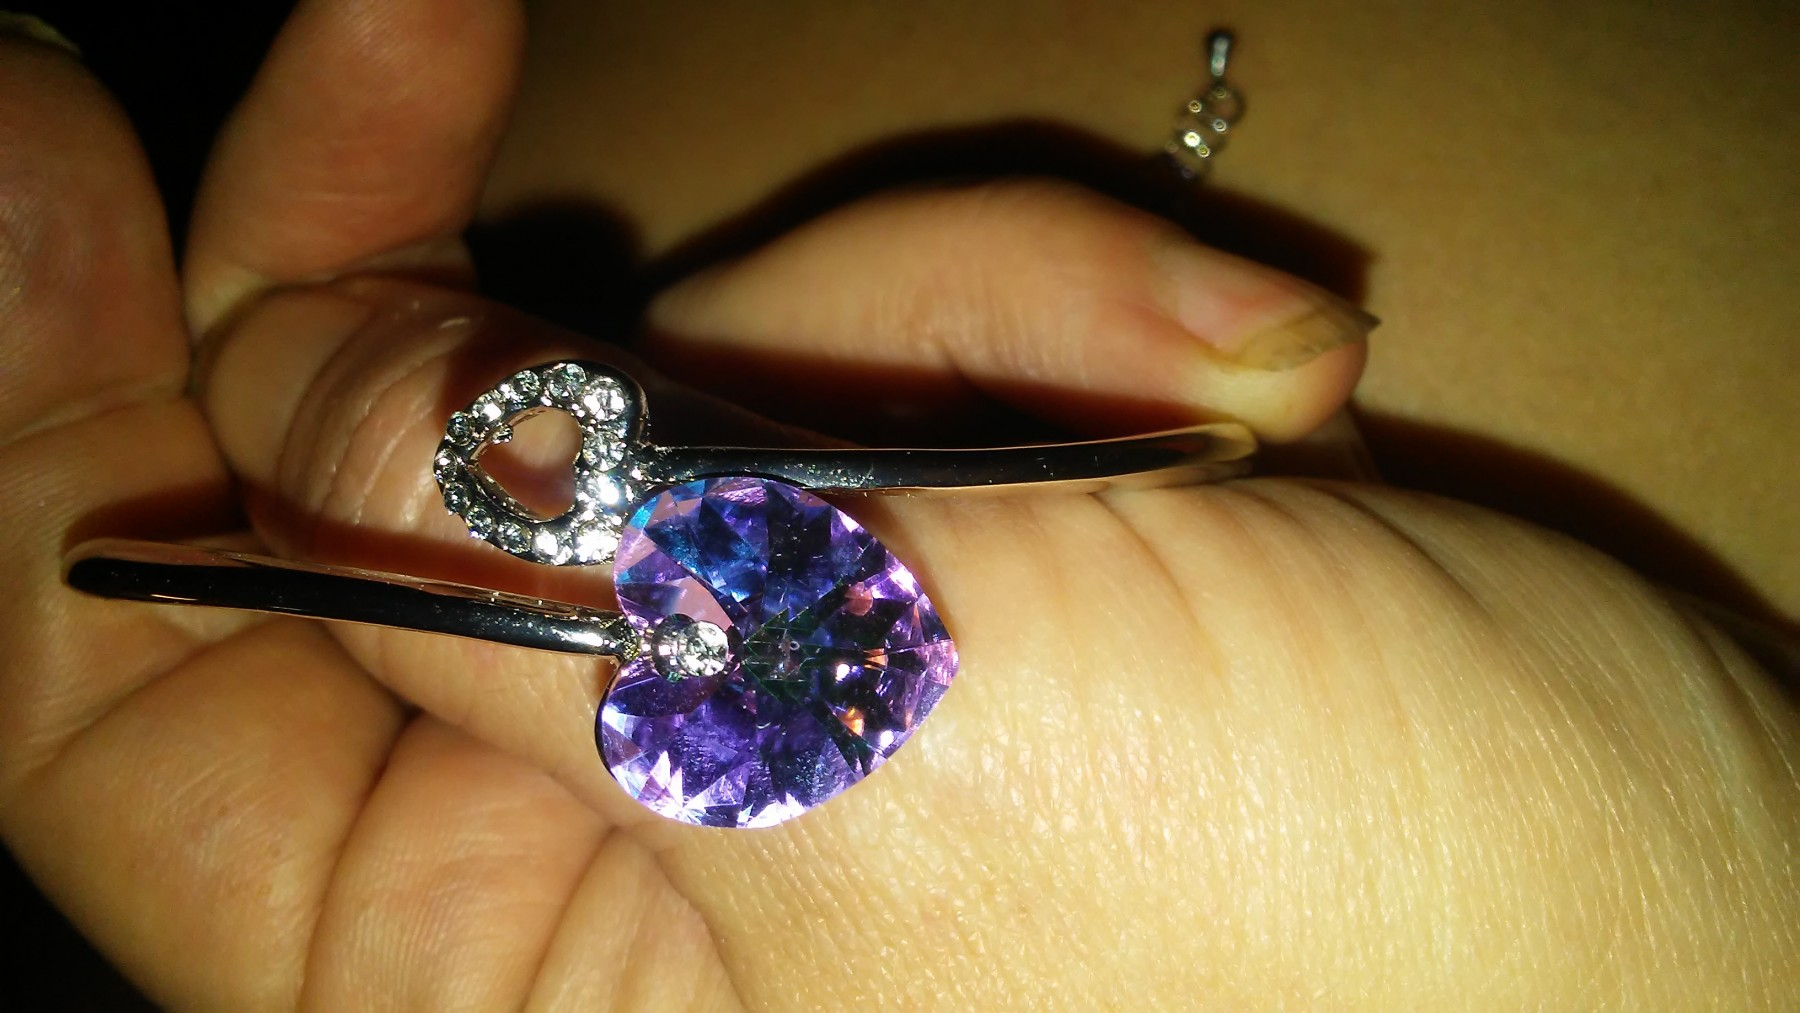 Very pretty bracelet and looks great on